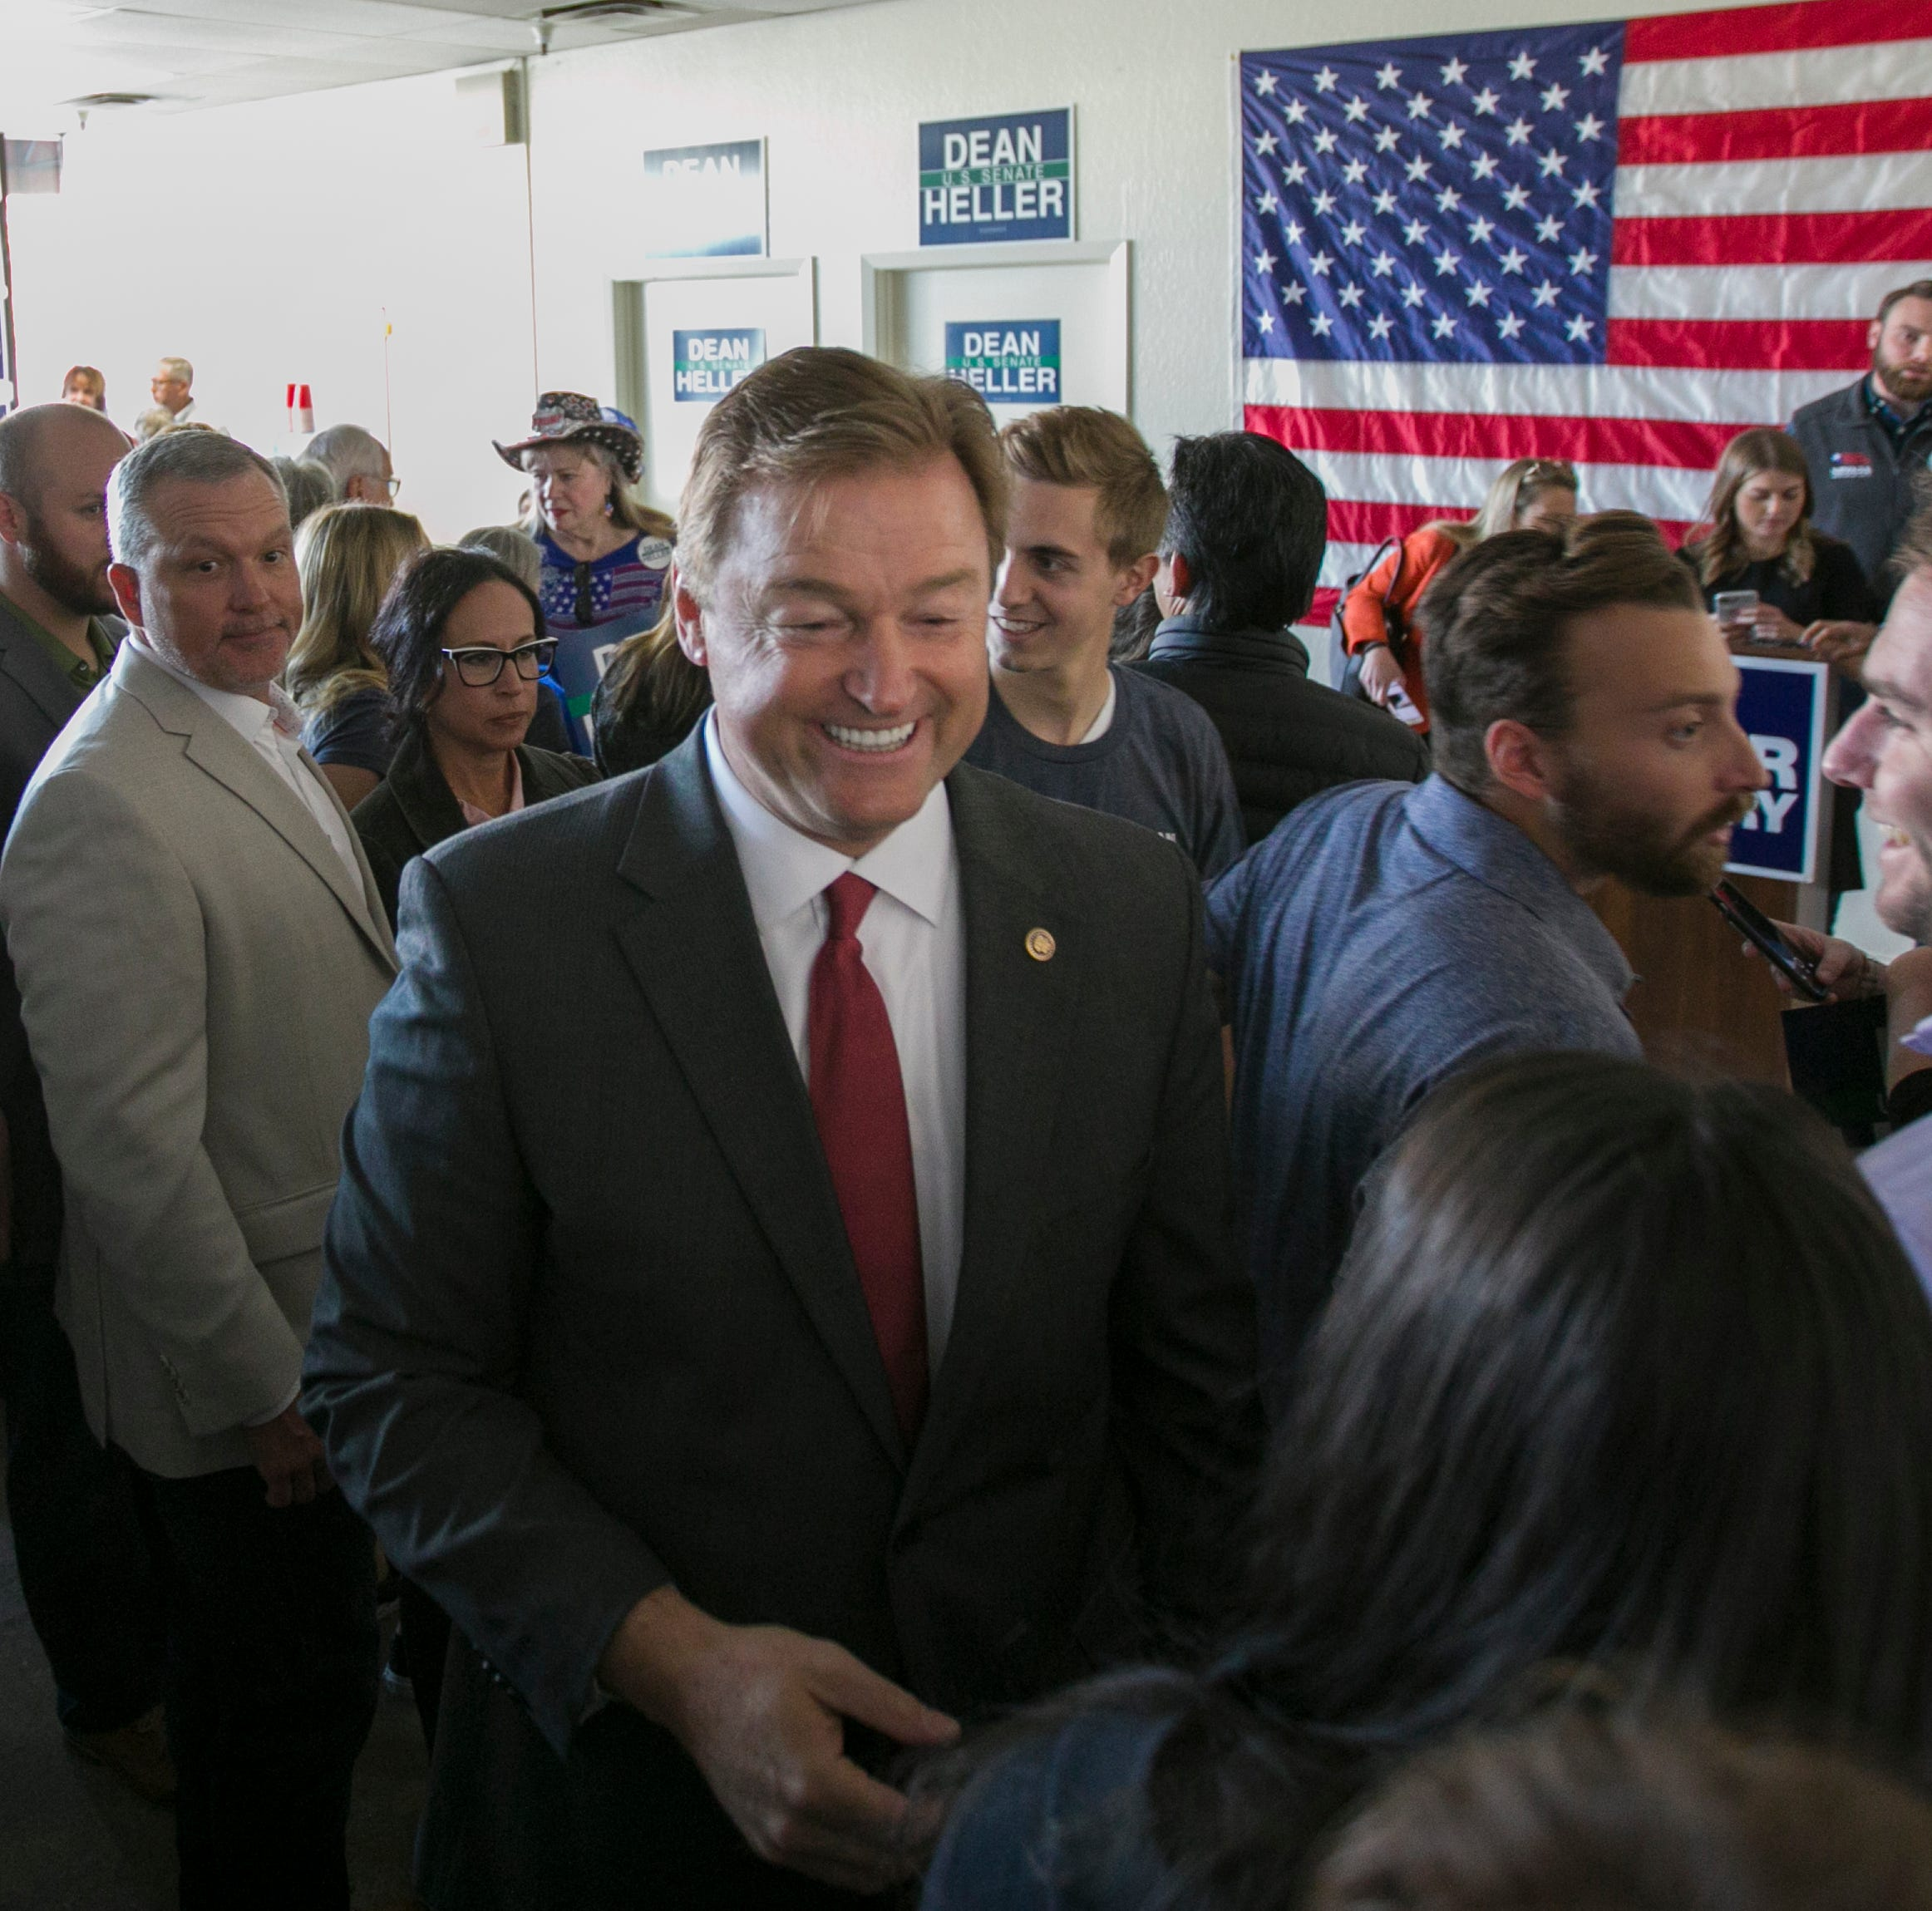 Heller says goodbye to congressional colleagues in emotional speech from the Senate floor